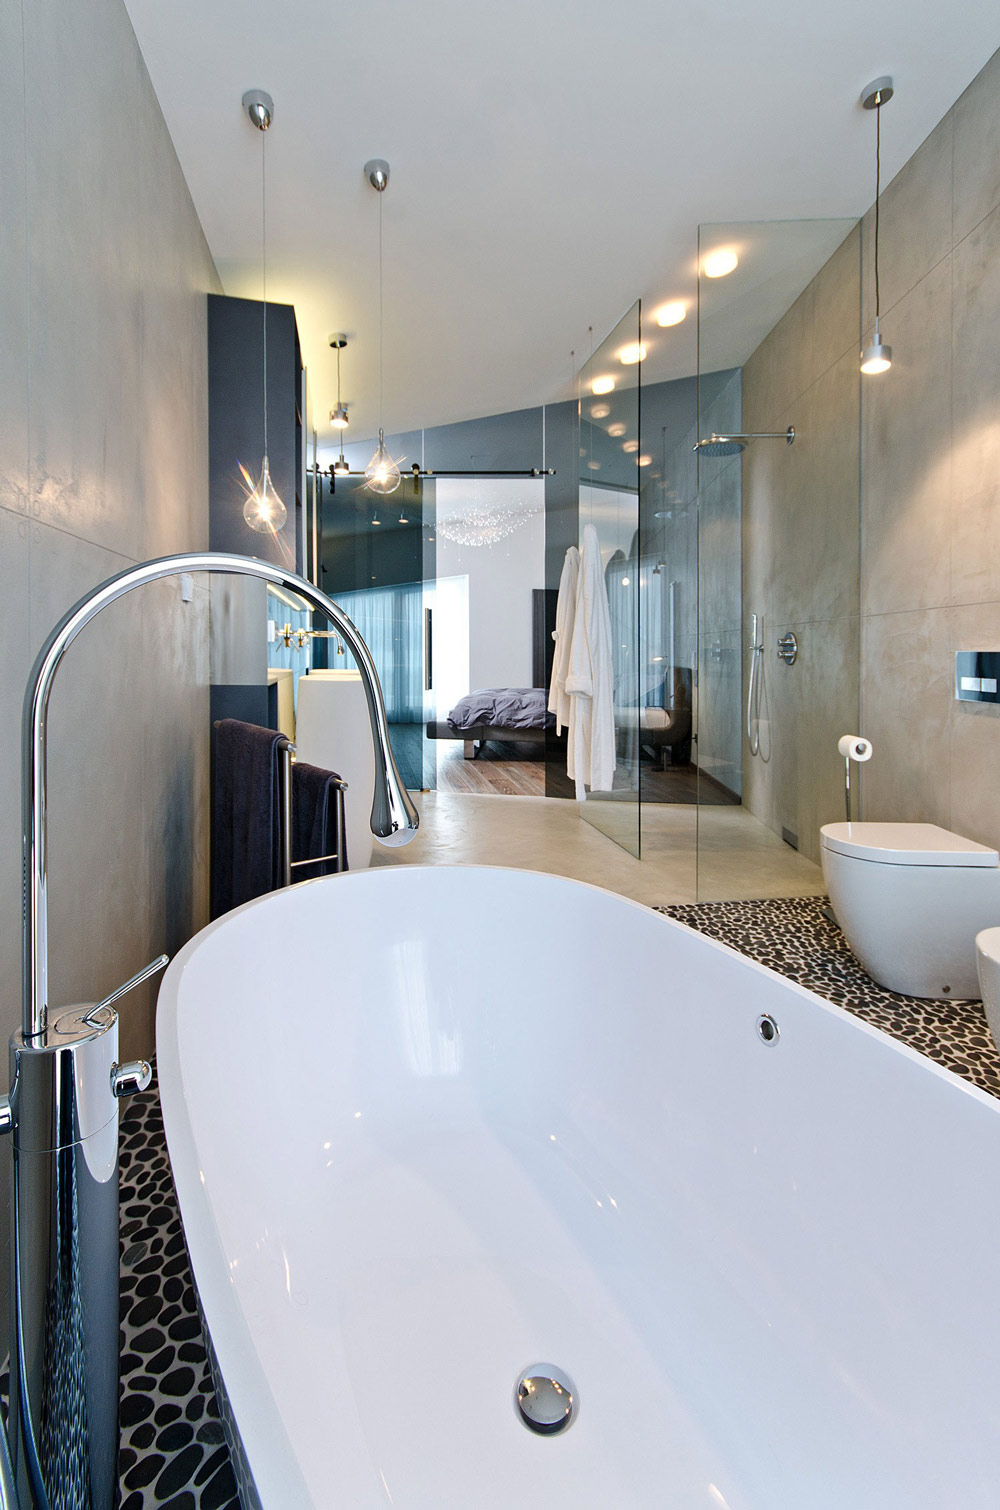 Bathroom Lighting, Glass Wall, Concrete Interior Design in Osice, Czech Republic